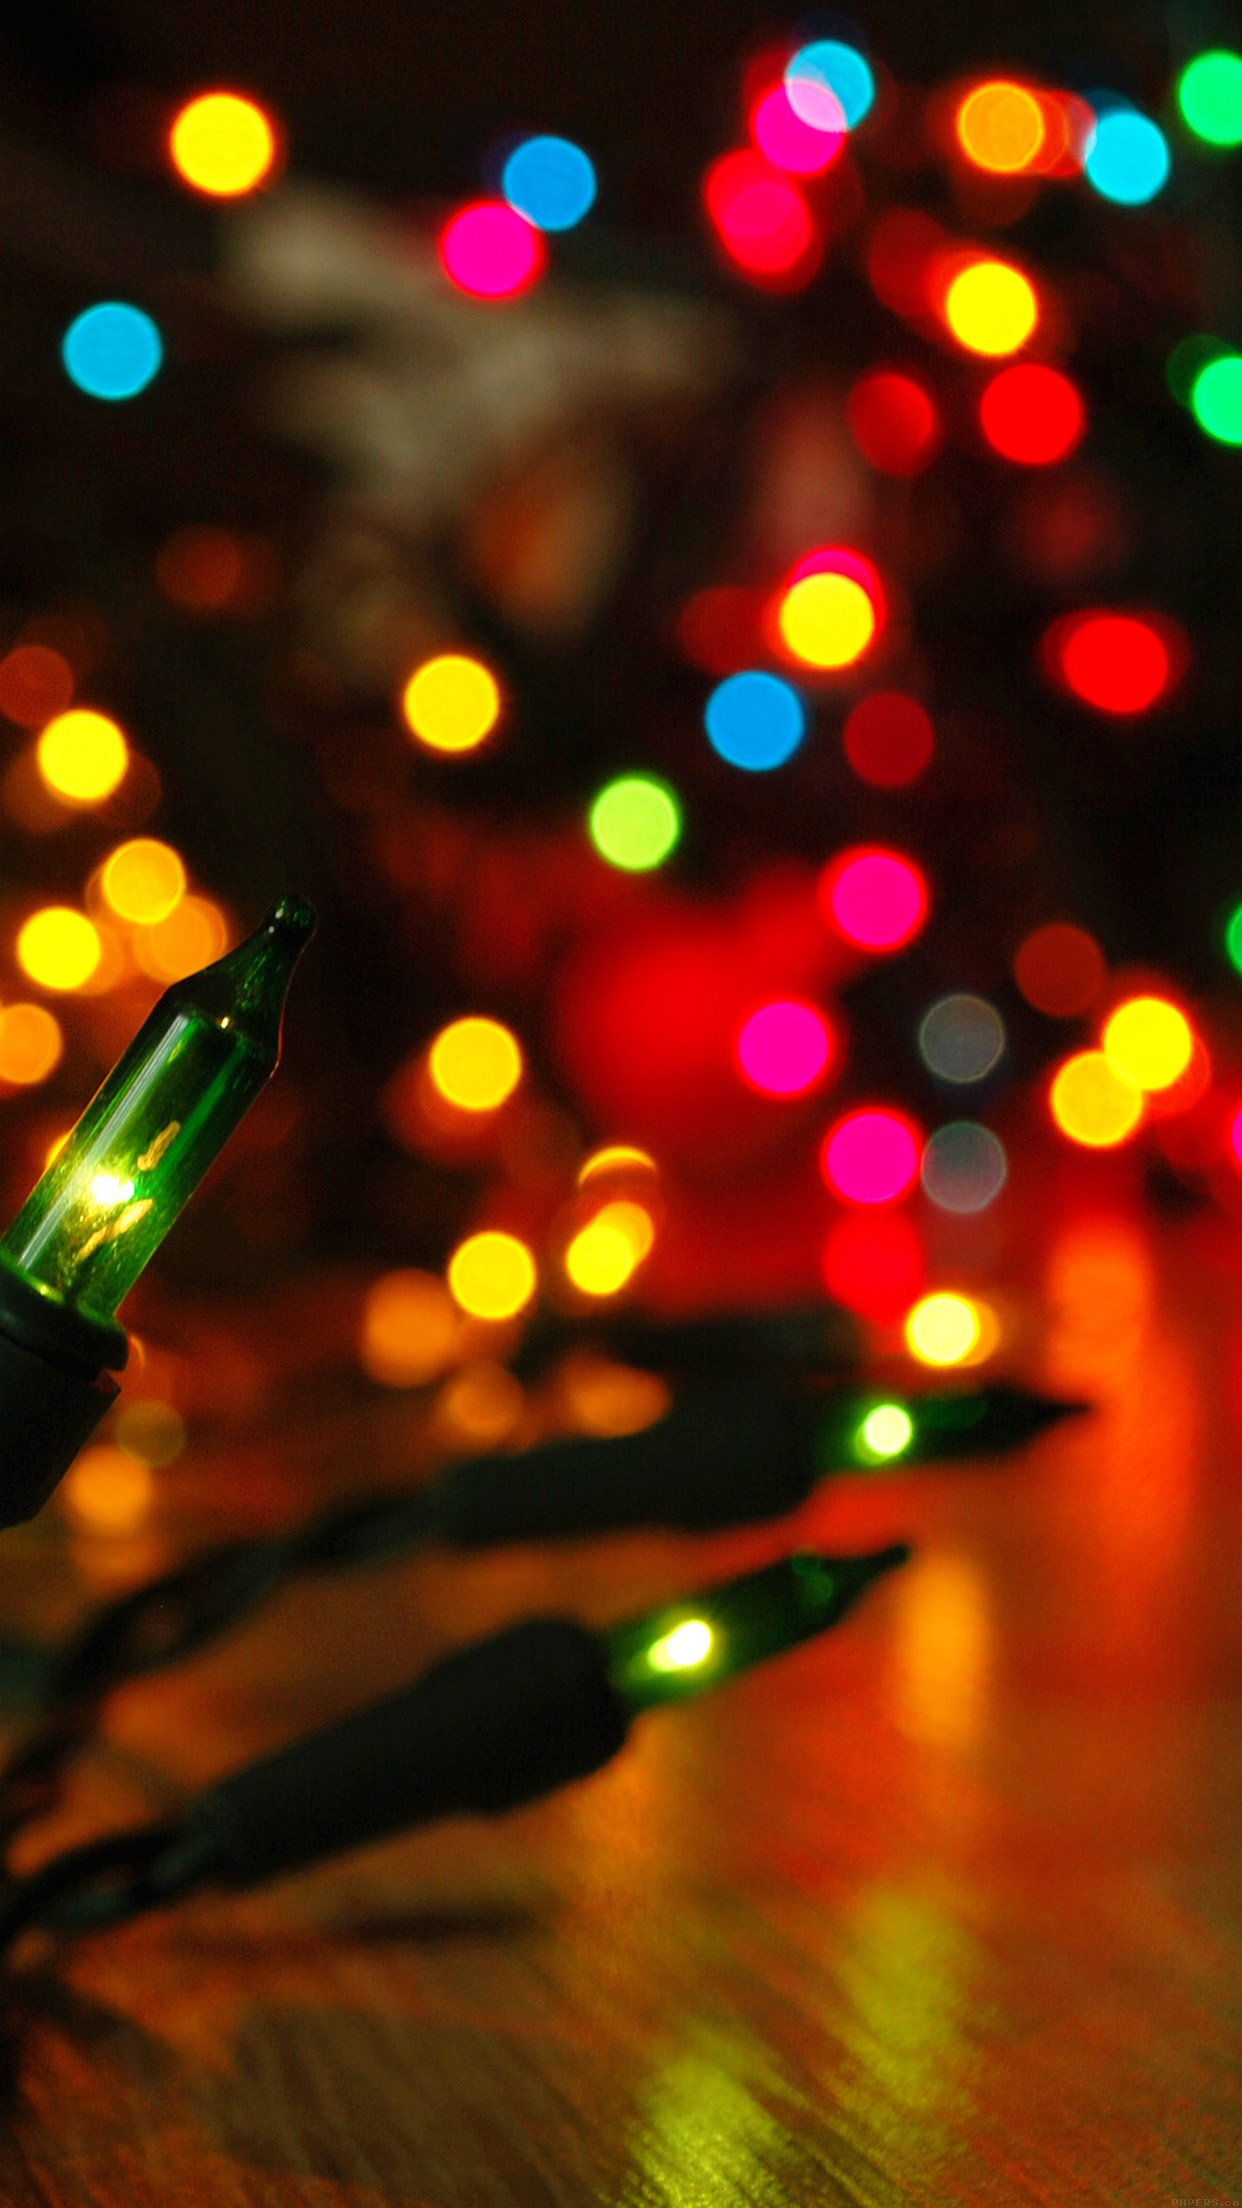 20 Christmas Wallpapers for iPhone 6s and iPhone 6 1242x2208